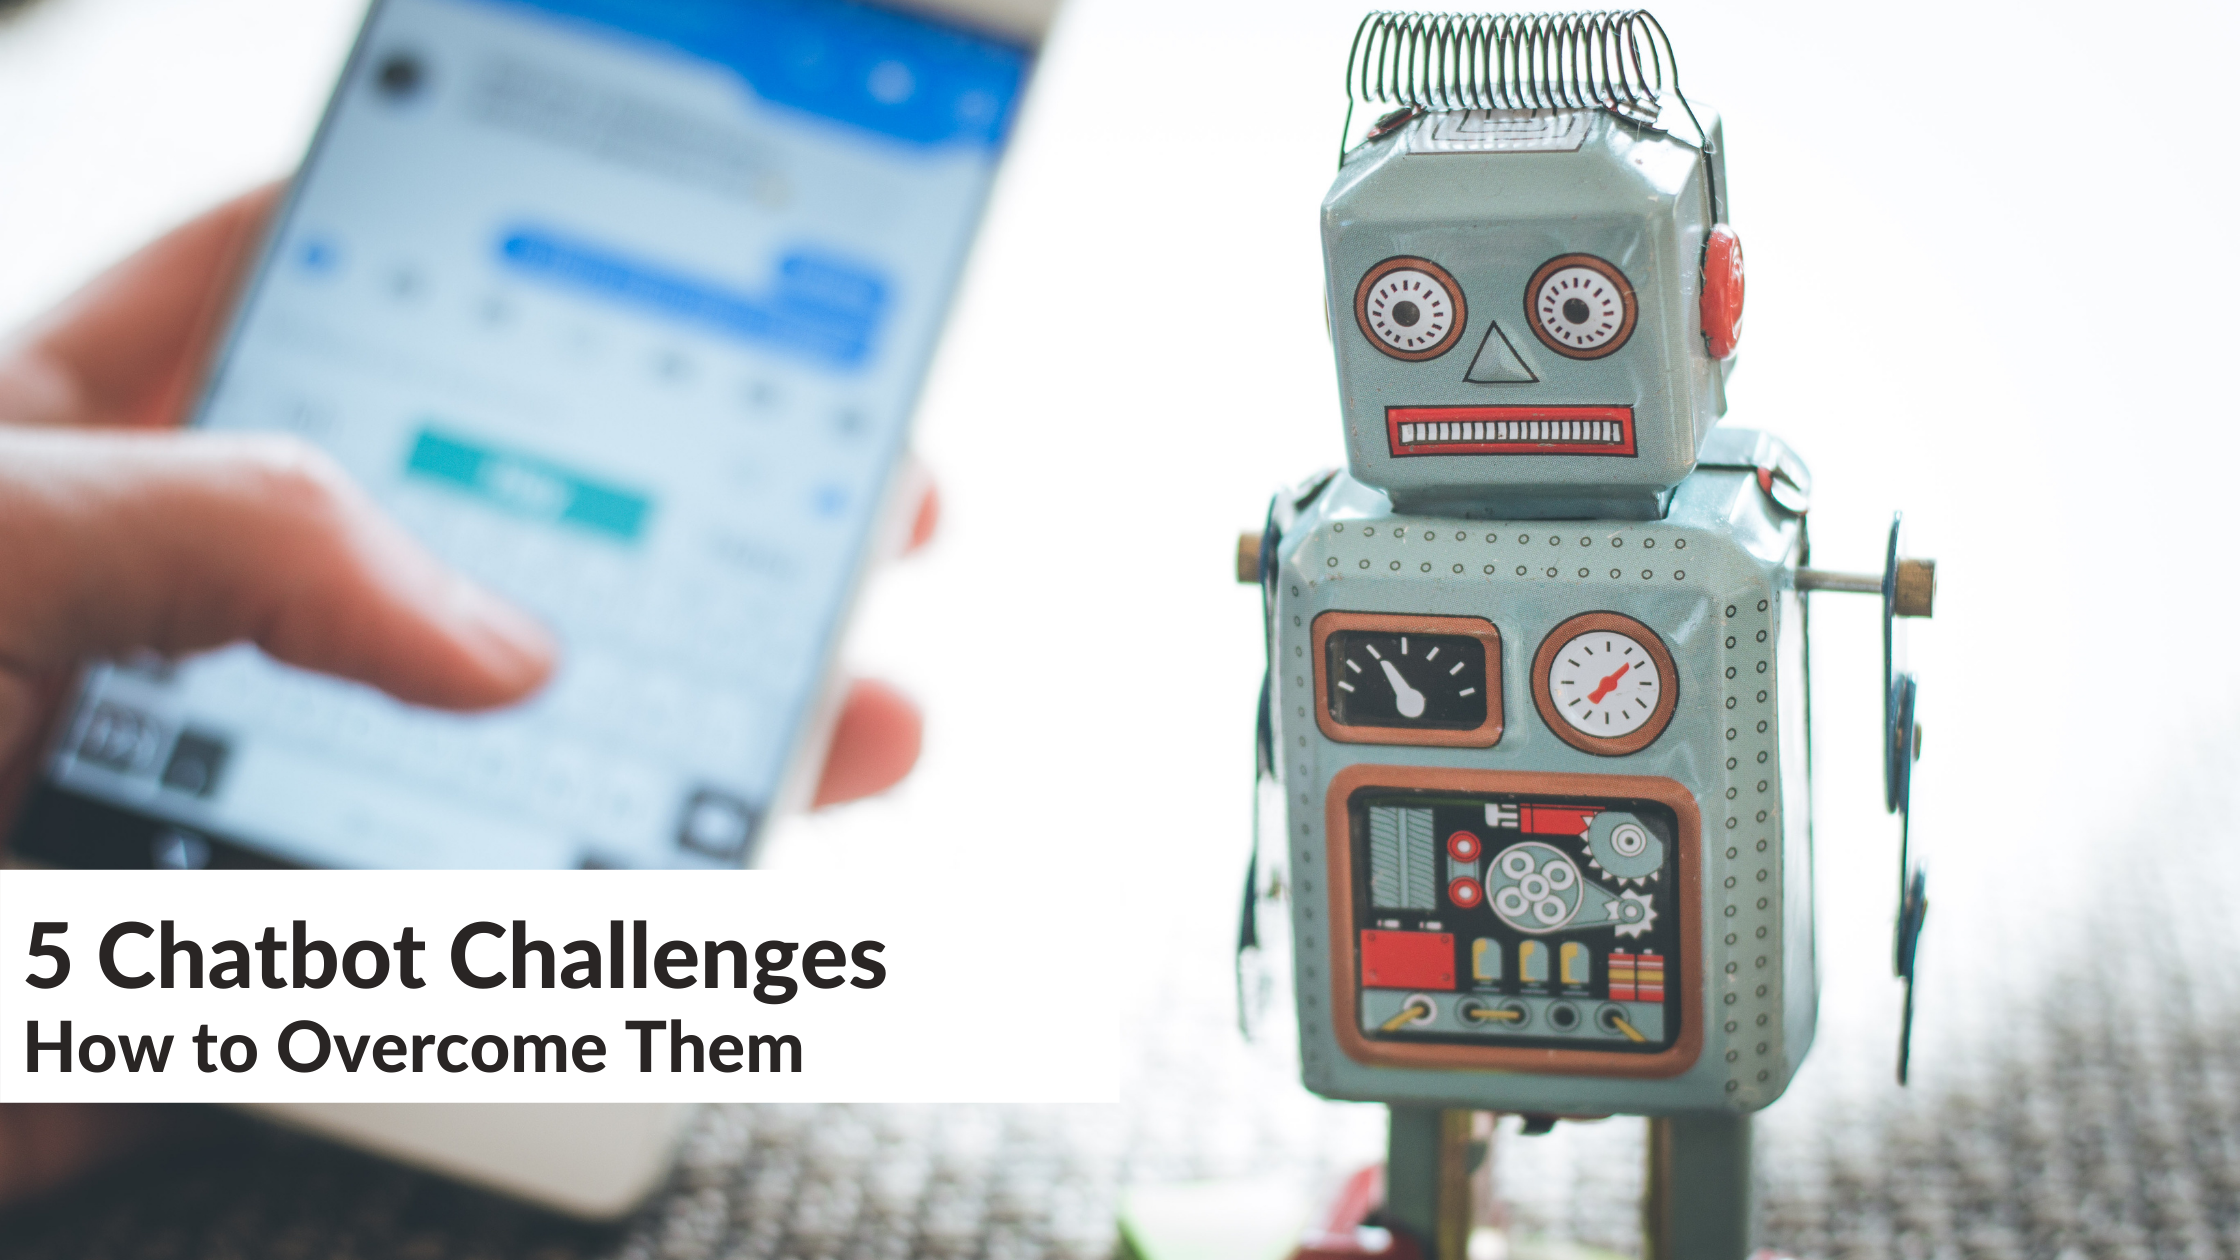 5 Chatbot Challenges and How to Overcome Them